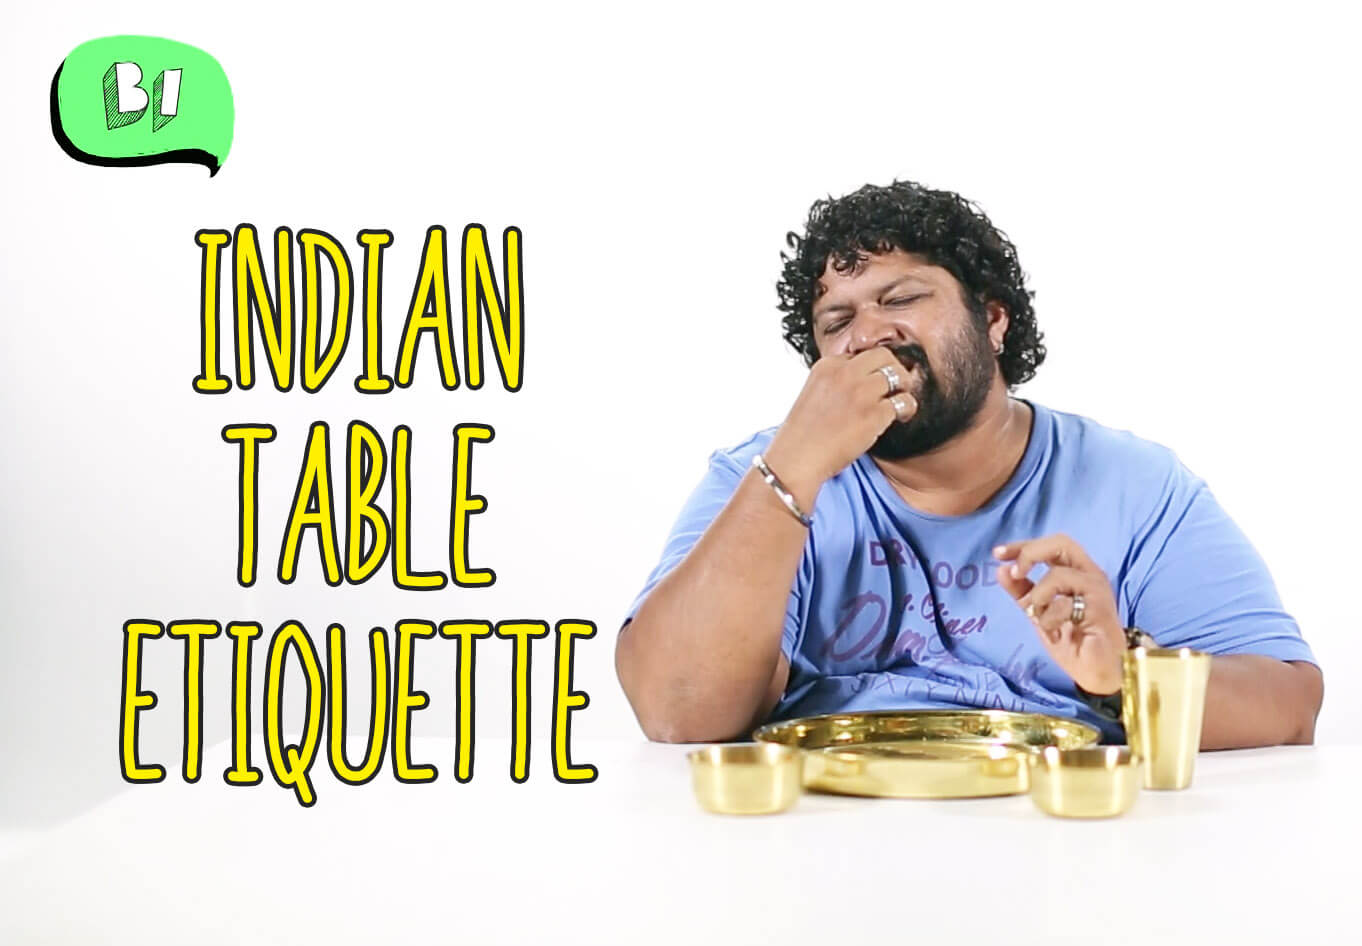 Indian Table Etiquette